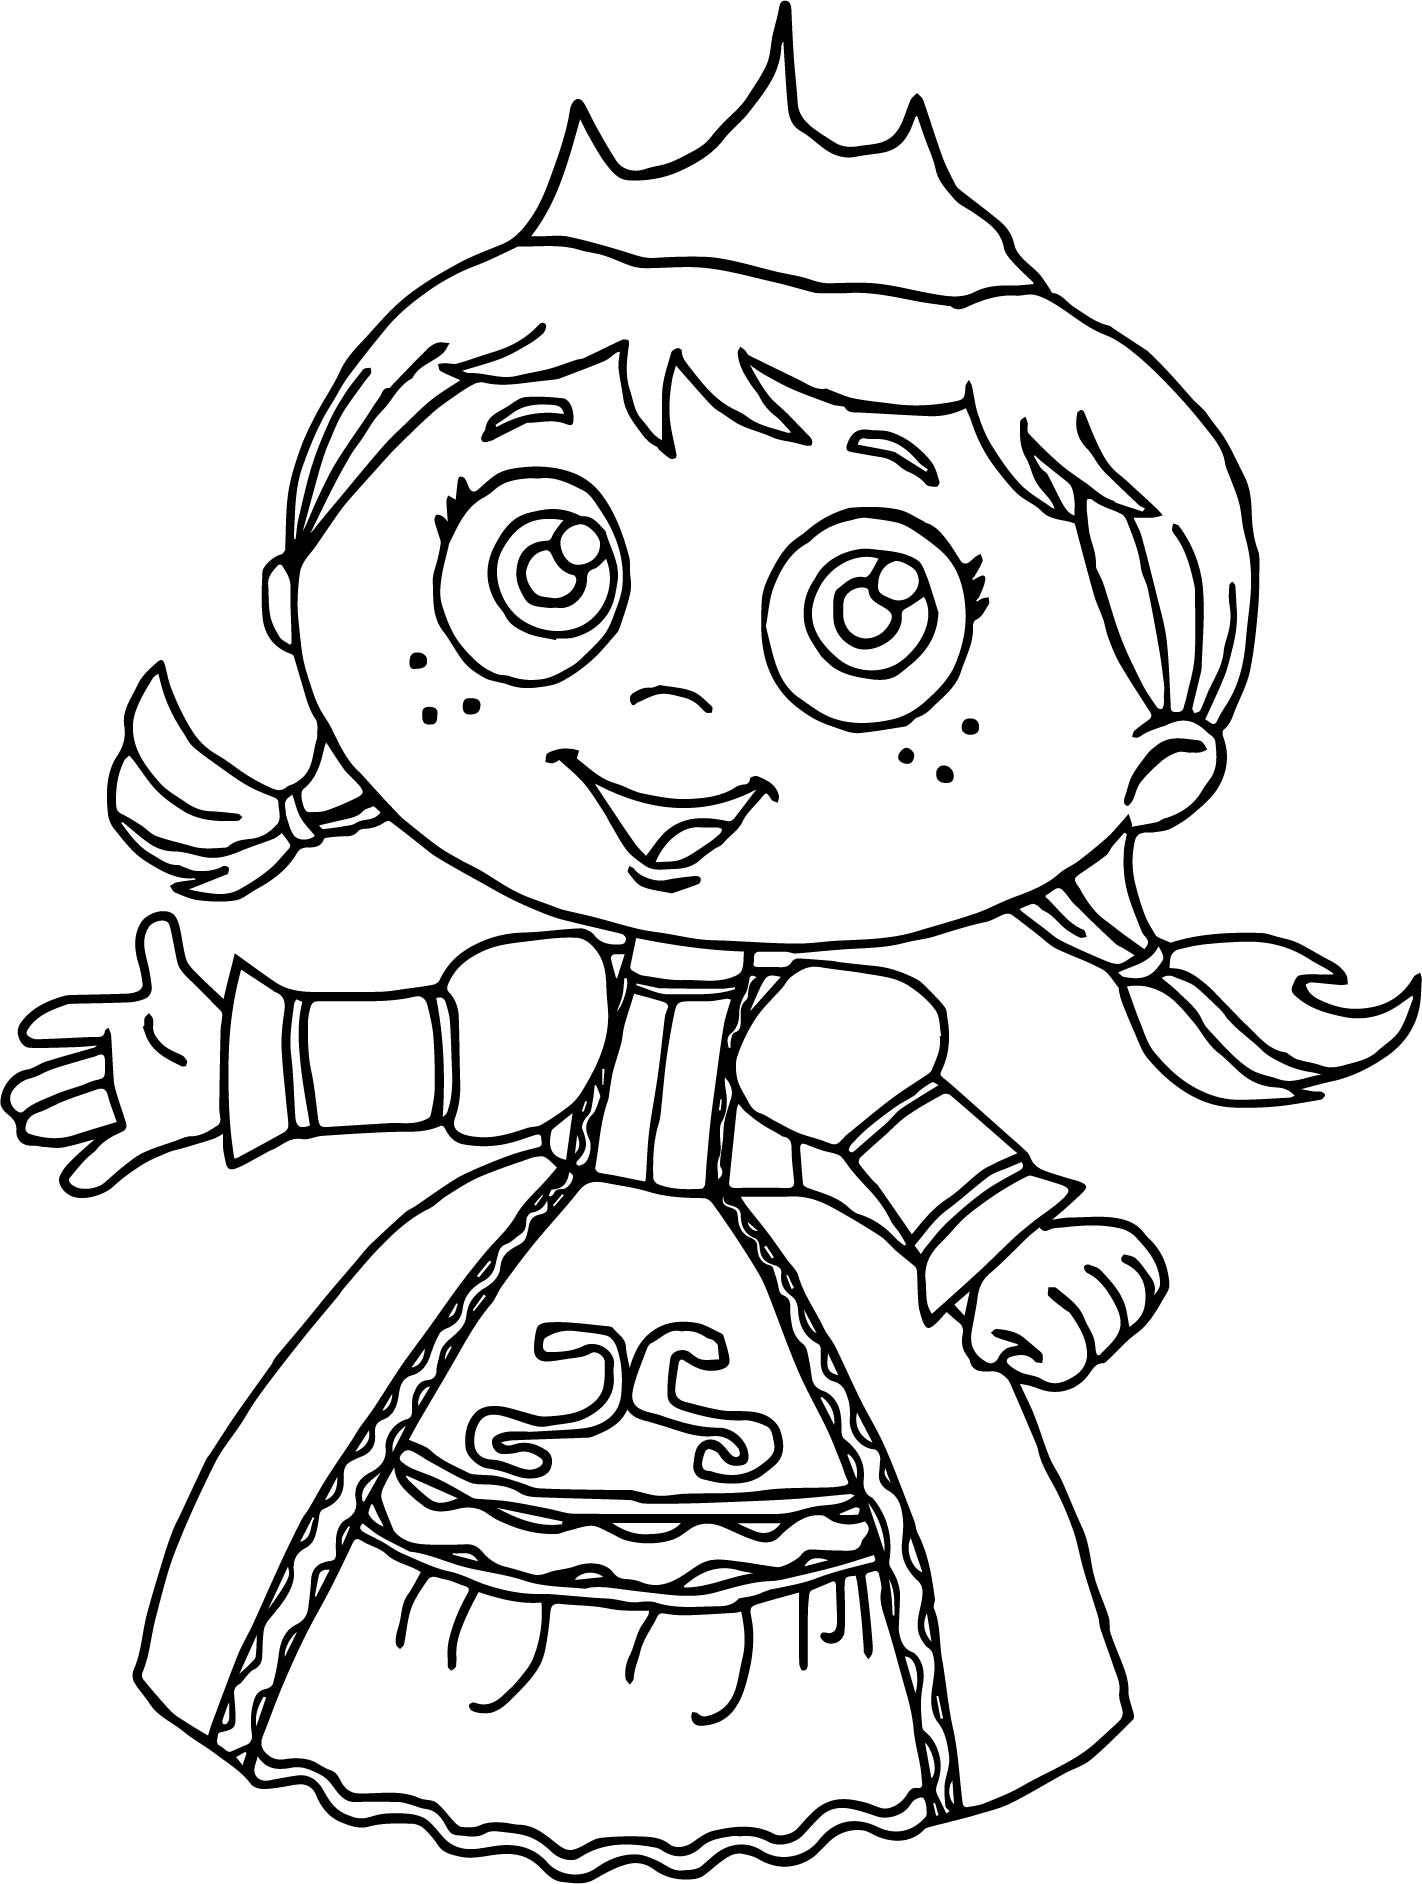 coloring pages action figures - super why coloring pages best coloring pages for kids